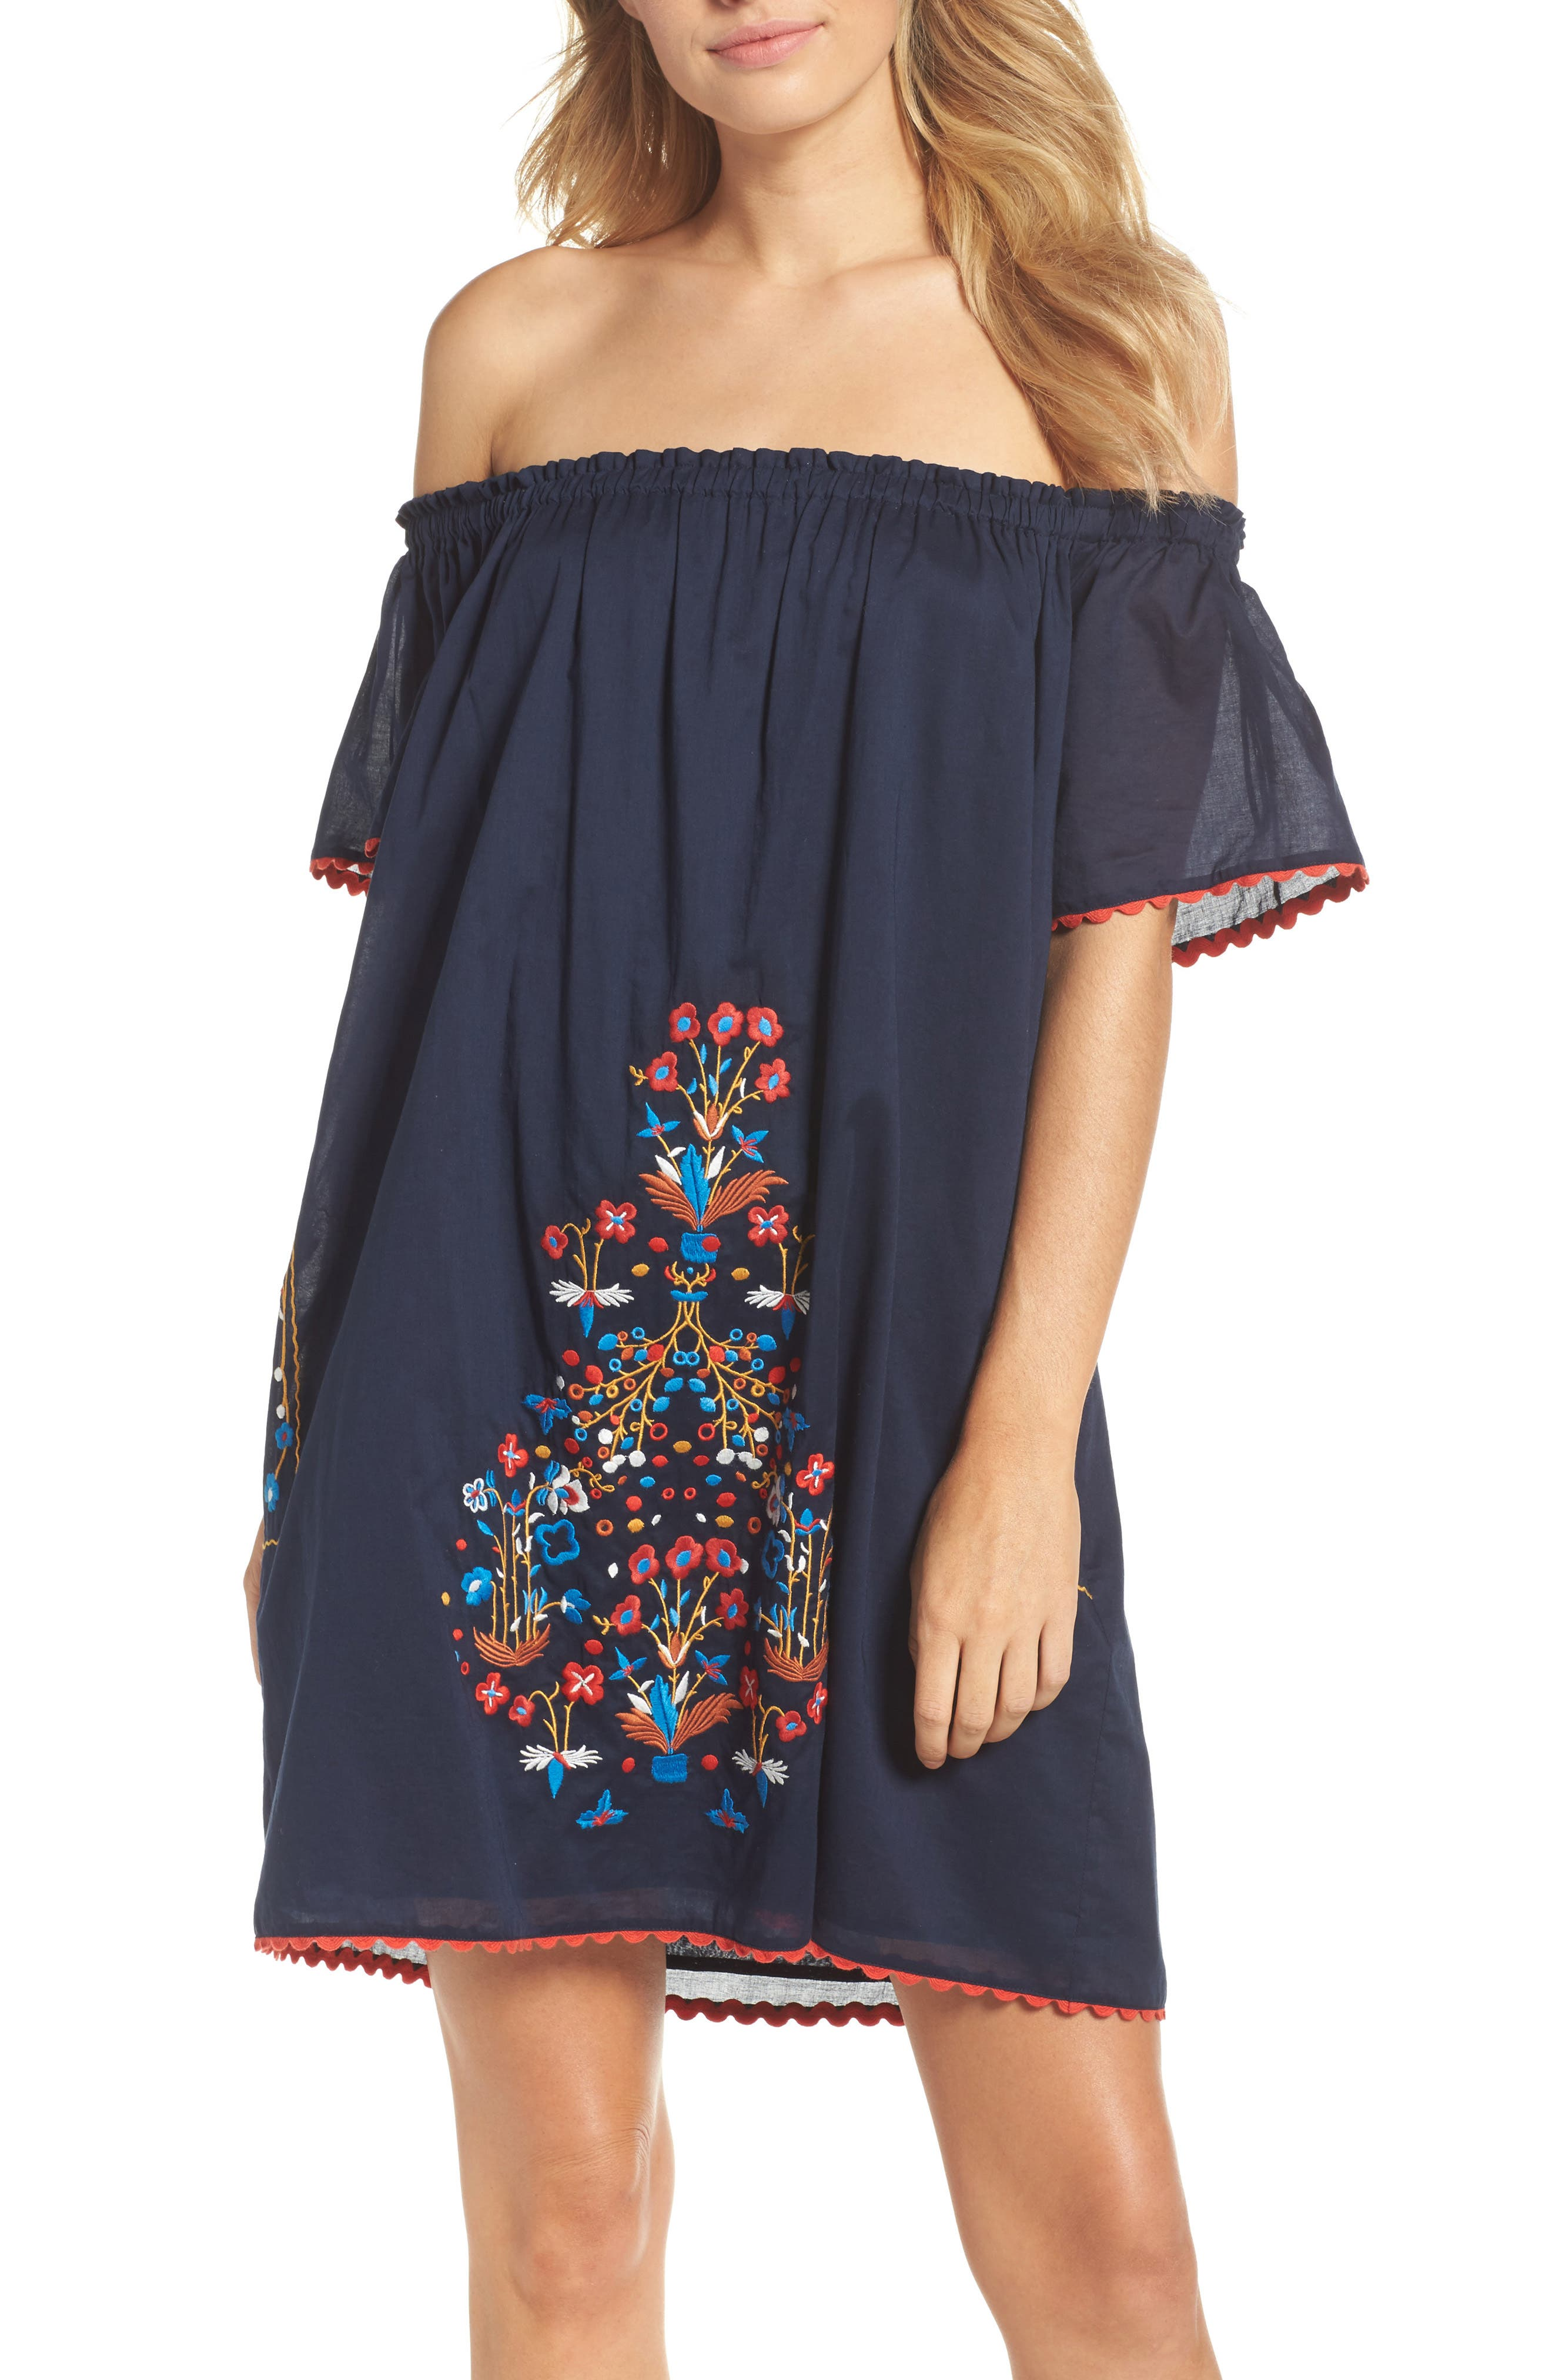 Wildflower Embroidered Off the Shoulder Cover-Up Dress,                             Main thumbnail 1, color,                             405